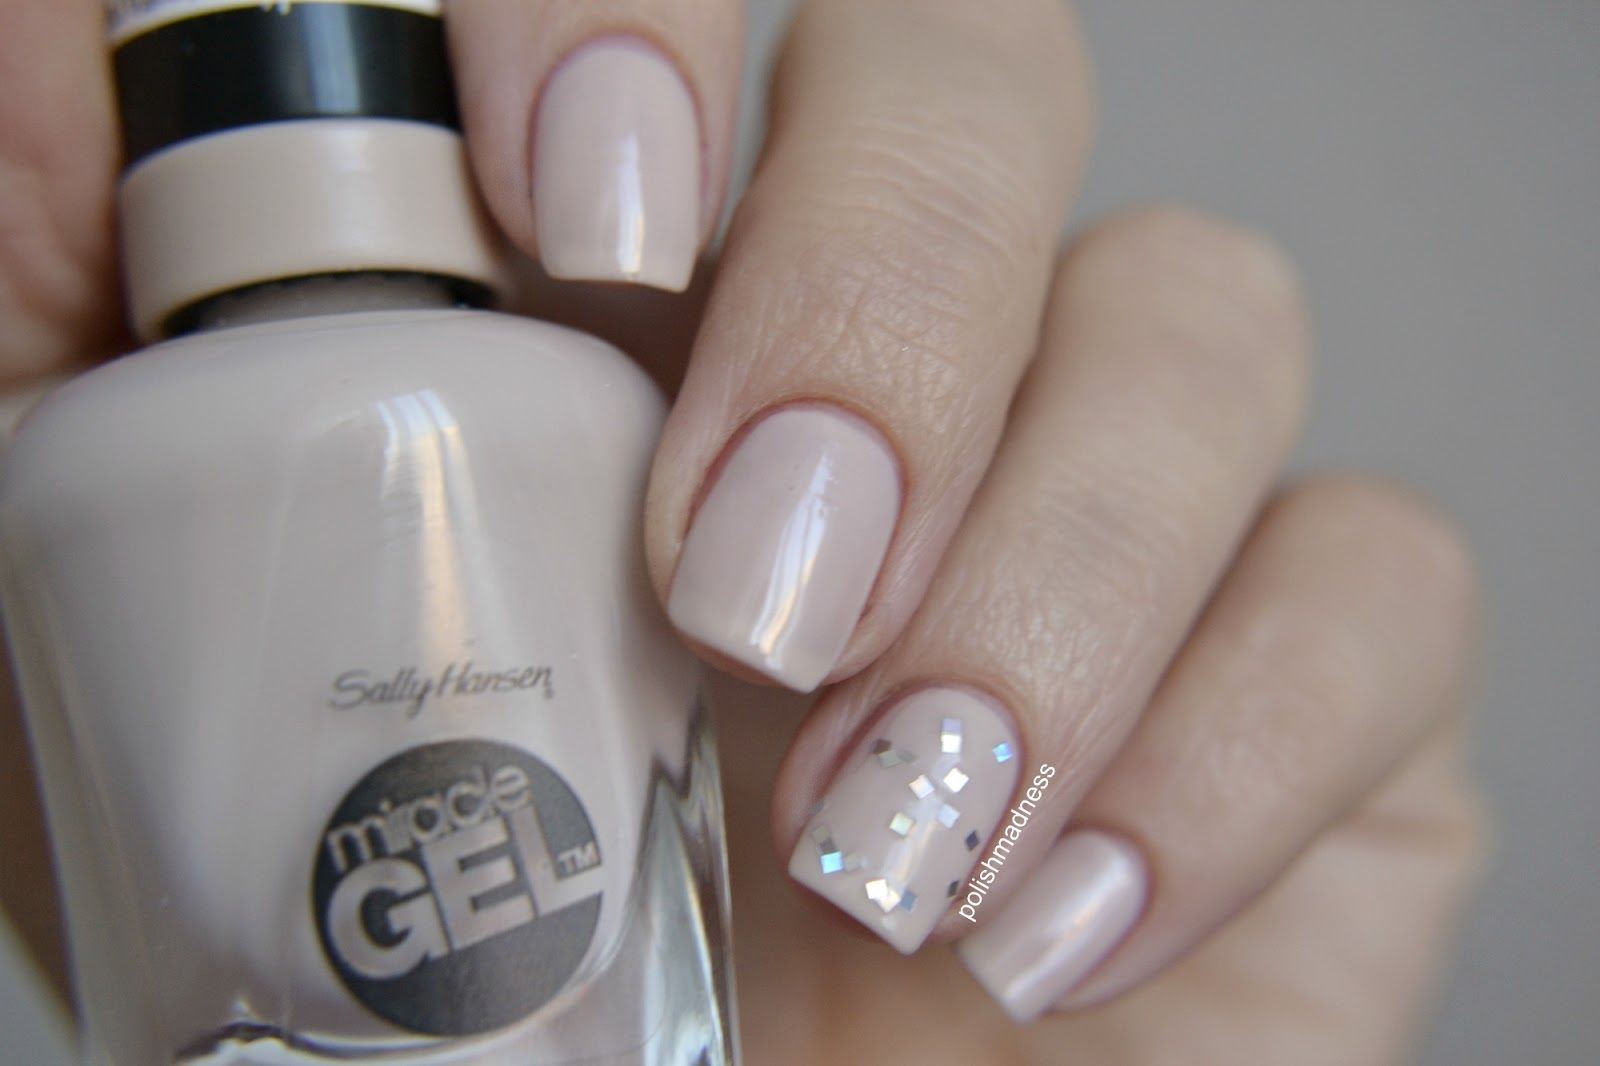 Birthday Suit Sally Hansen Gel Nail And Manicure Trends